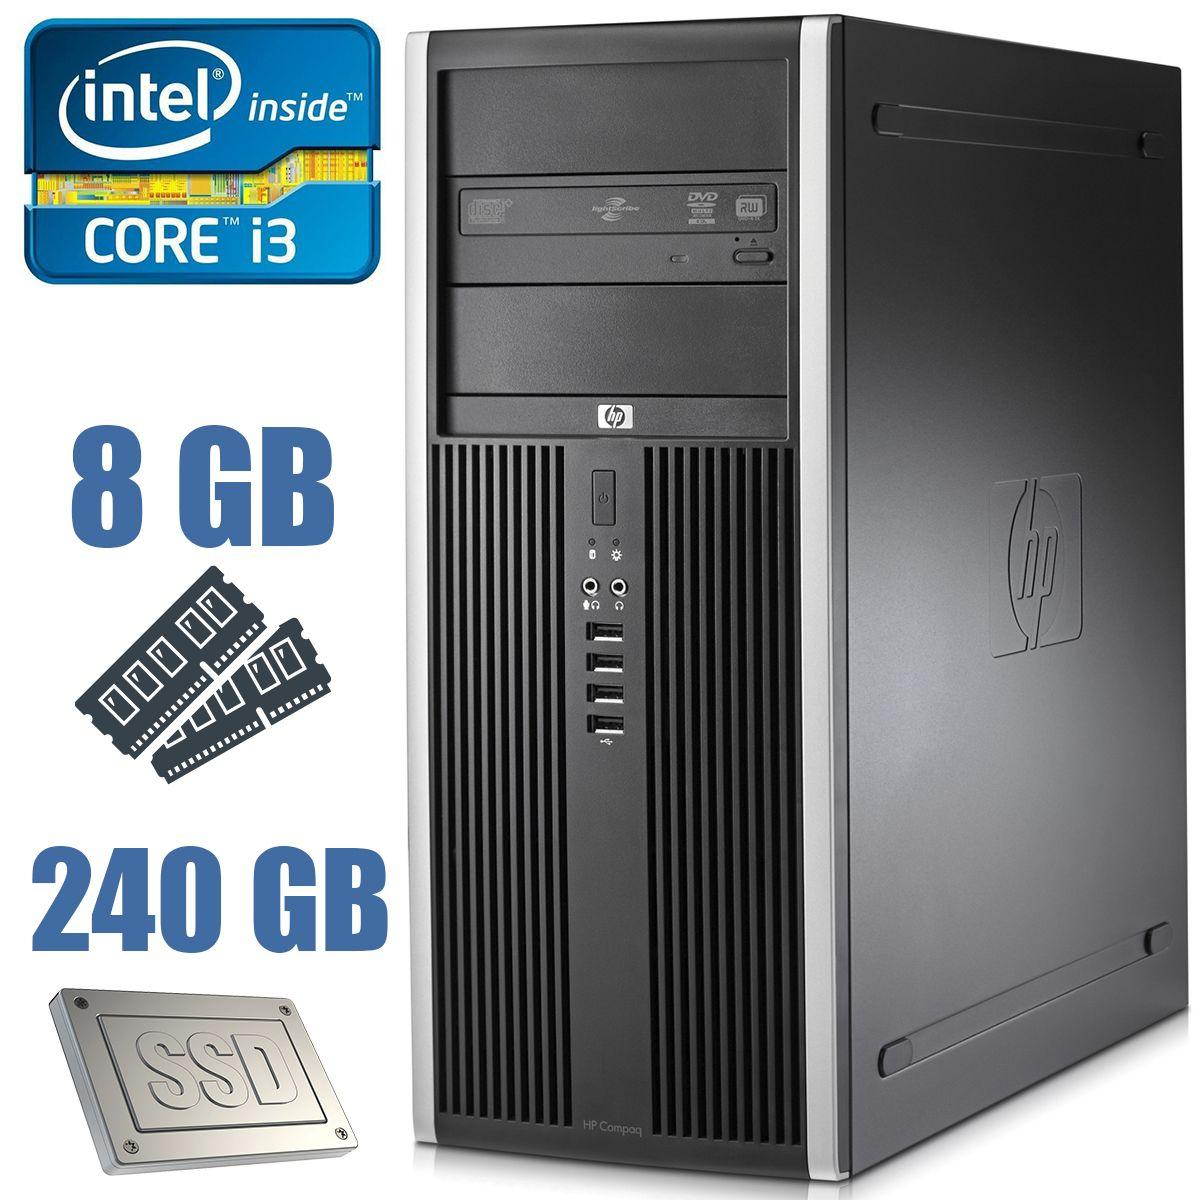 HP Compaq 8200 Elite Tower / Intel Core i3-2100 (2(4) ядра по 3.1GHz) / 8GB DDR3 / new! 240GB SSD